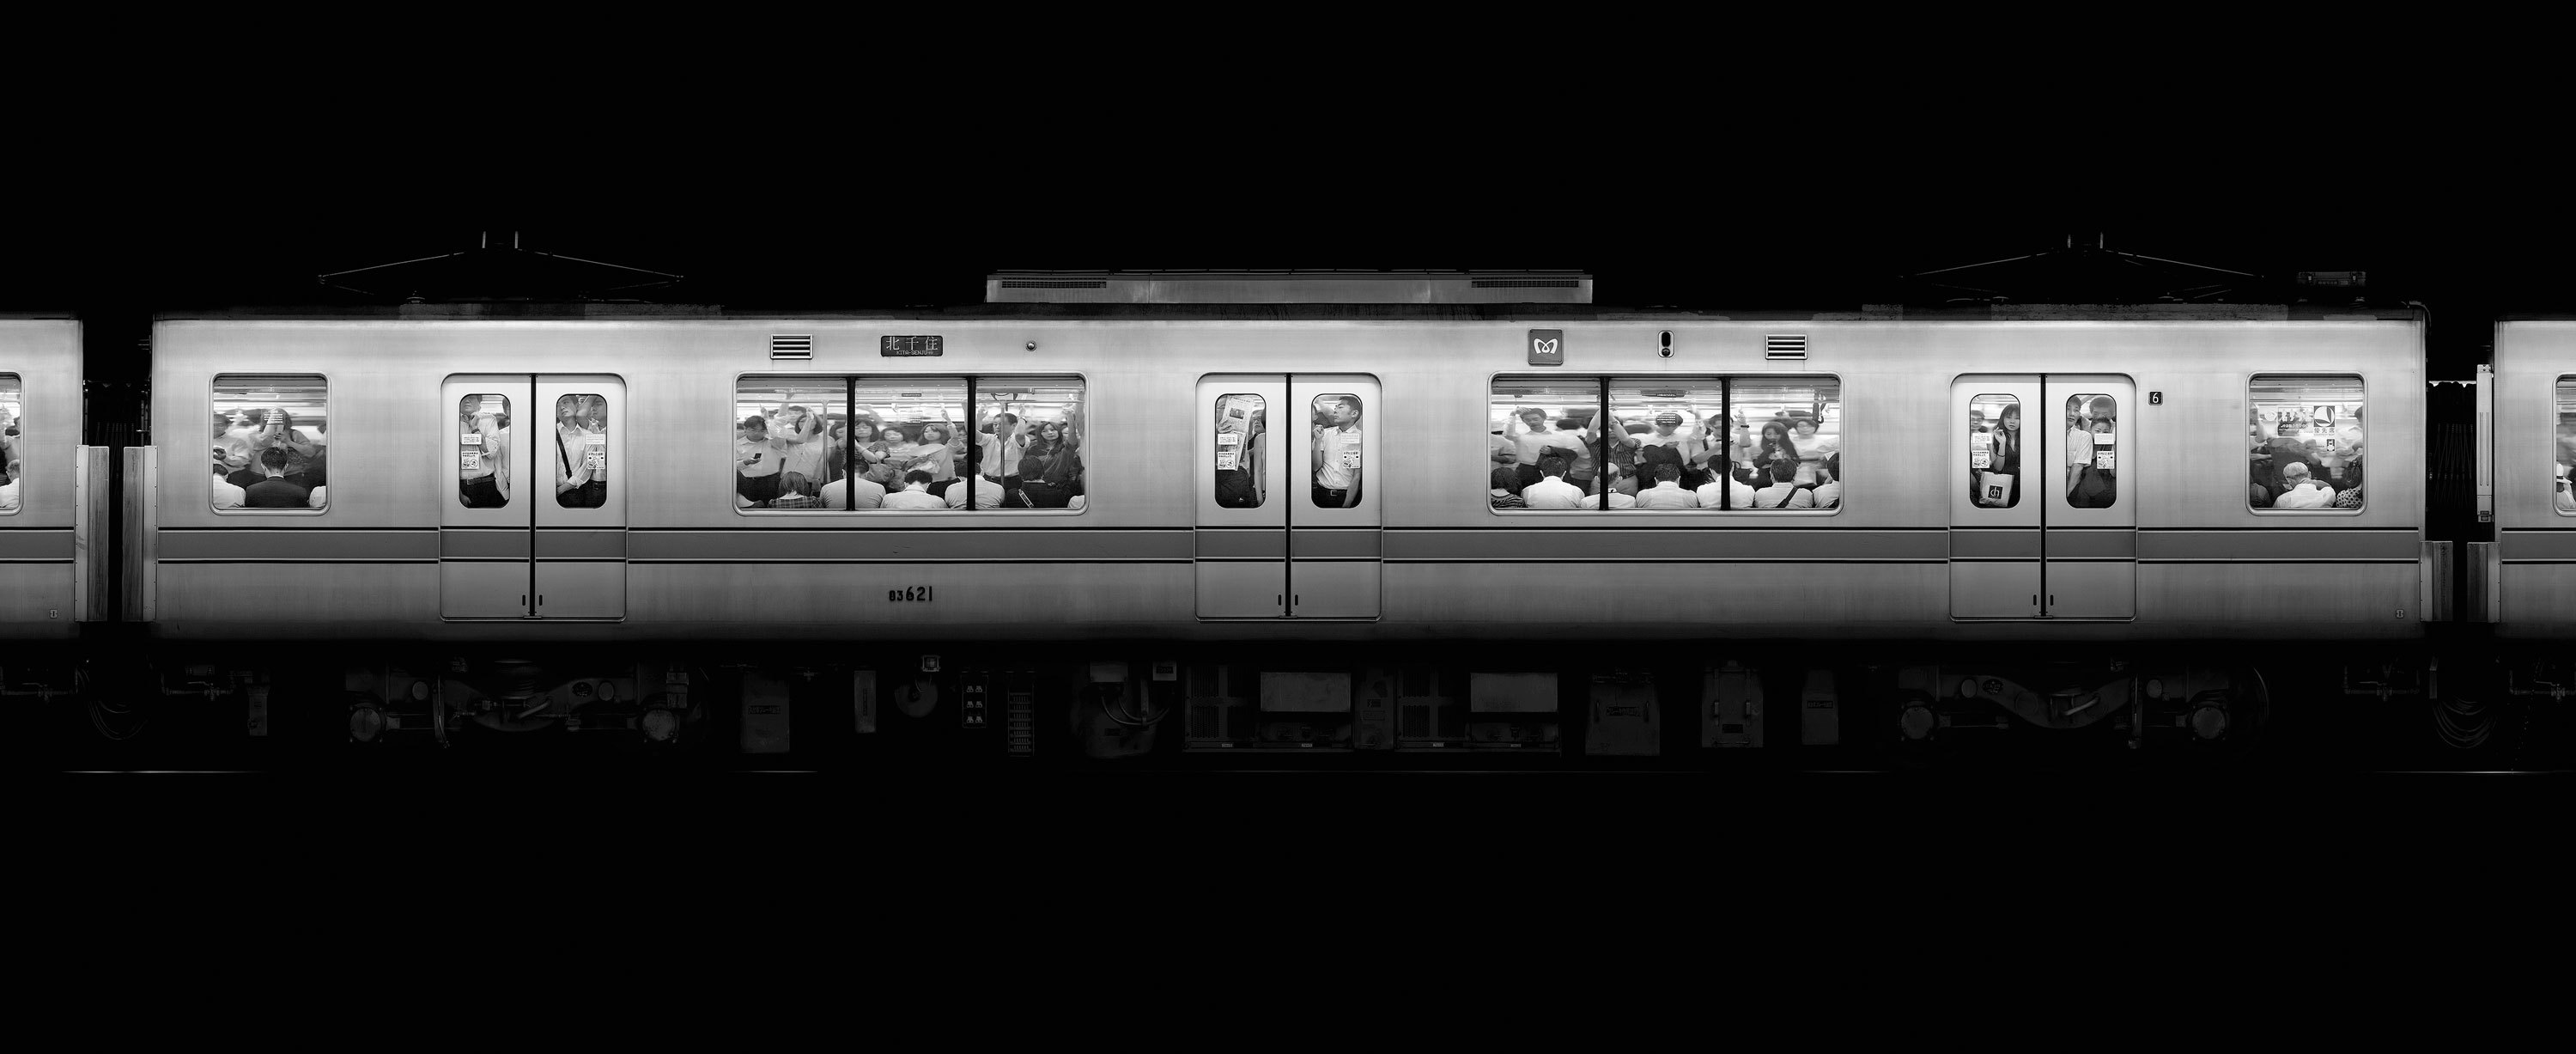 Photo subway train wallpapers and images   wallpapers pictures 3000x1227